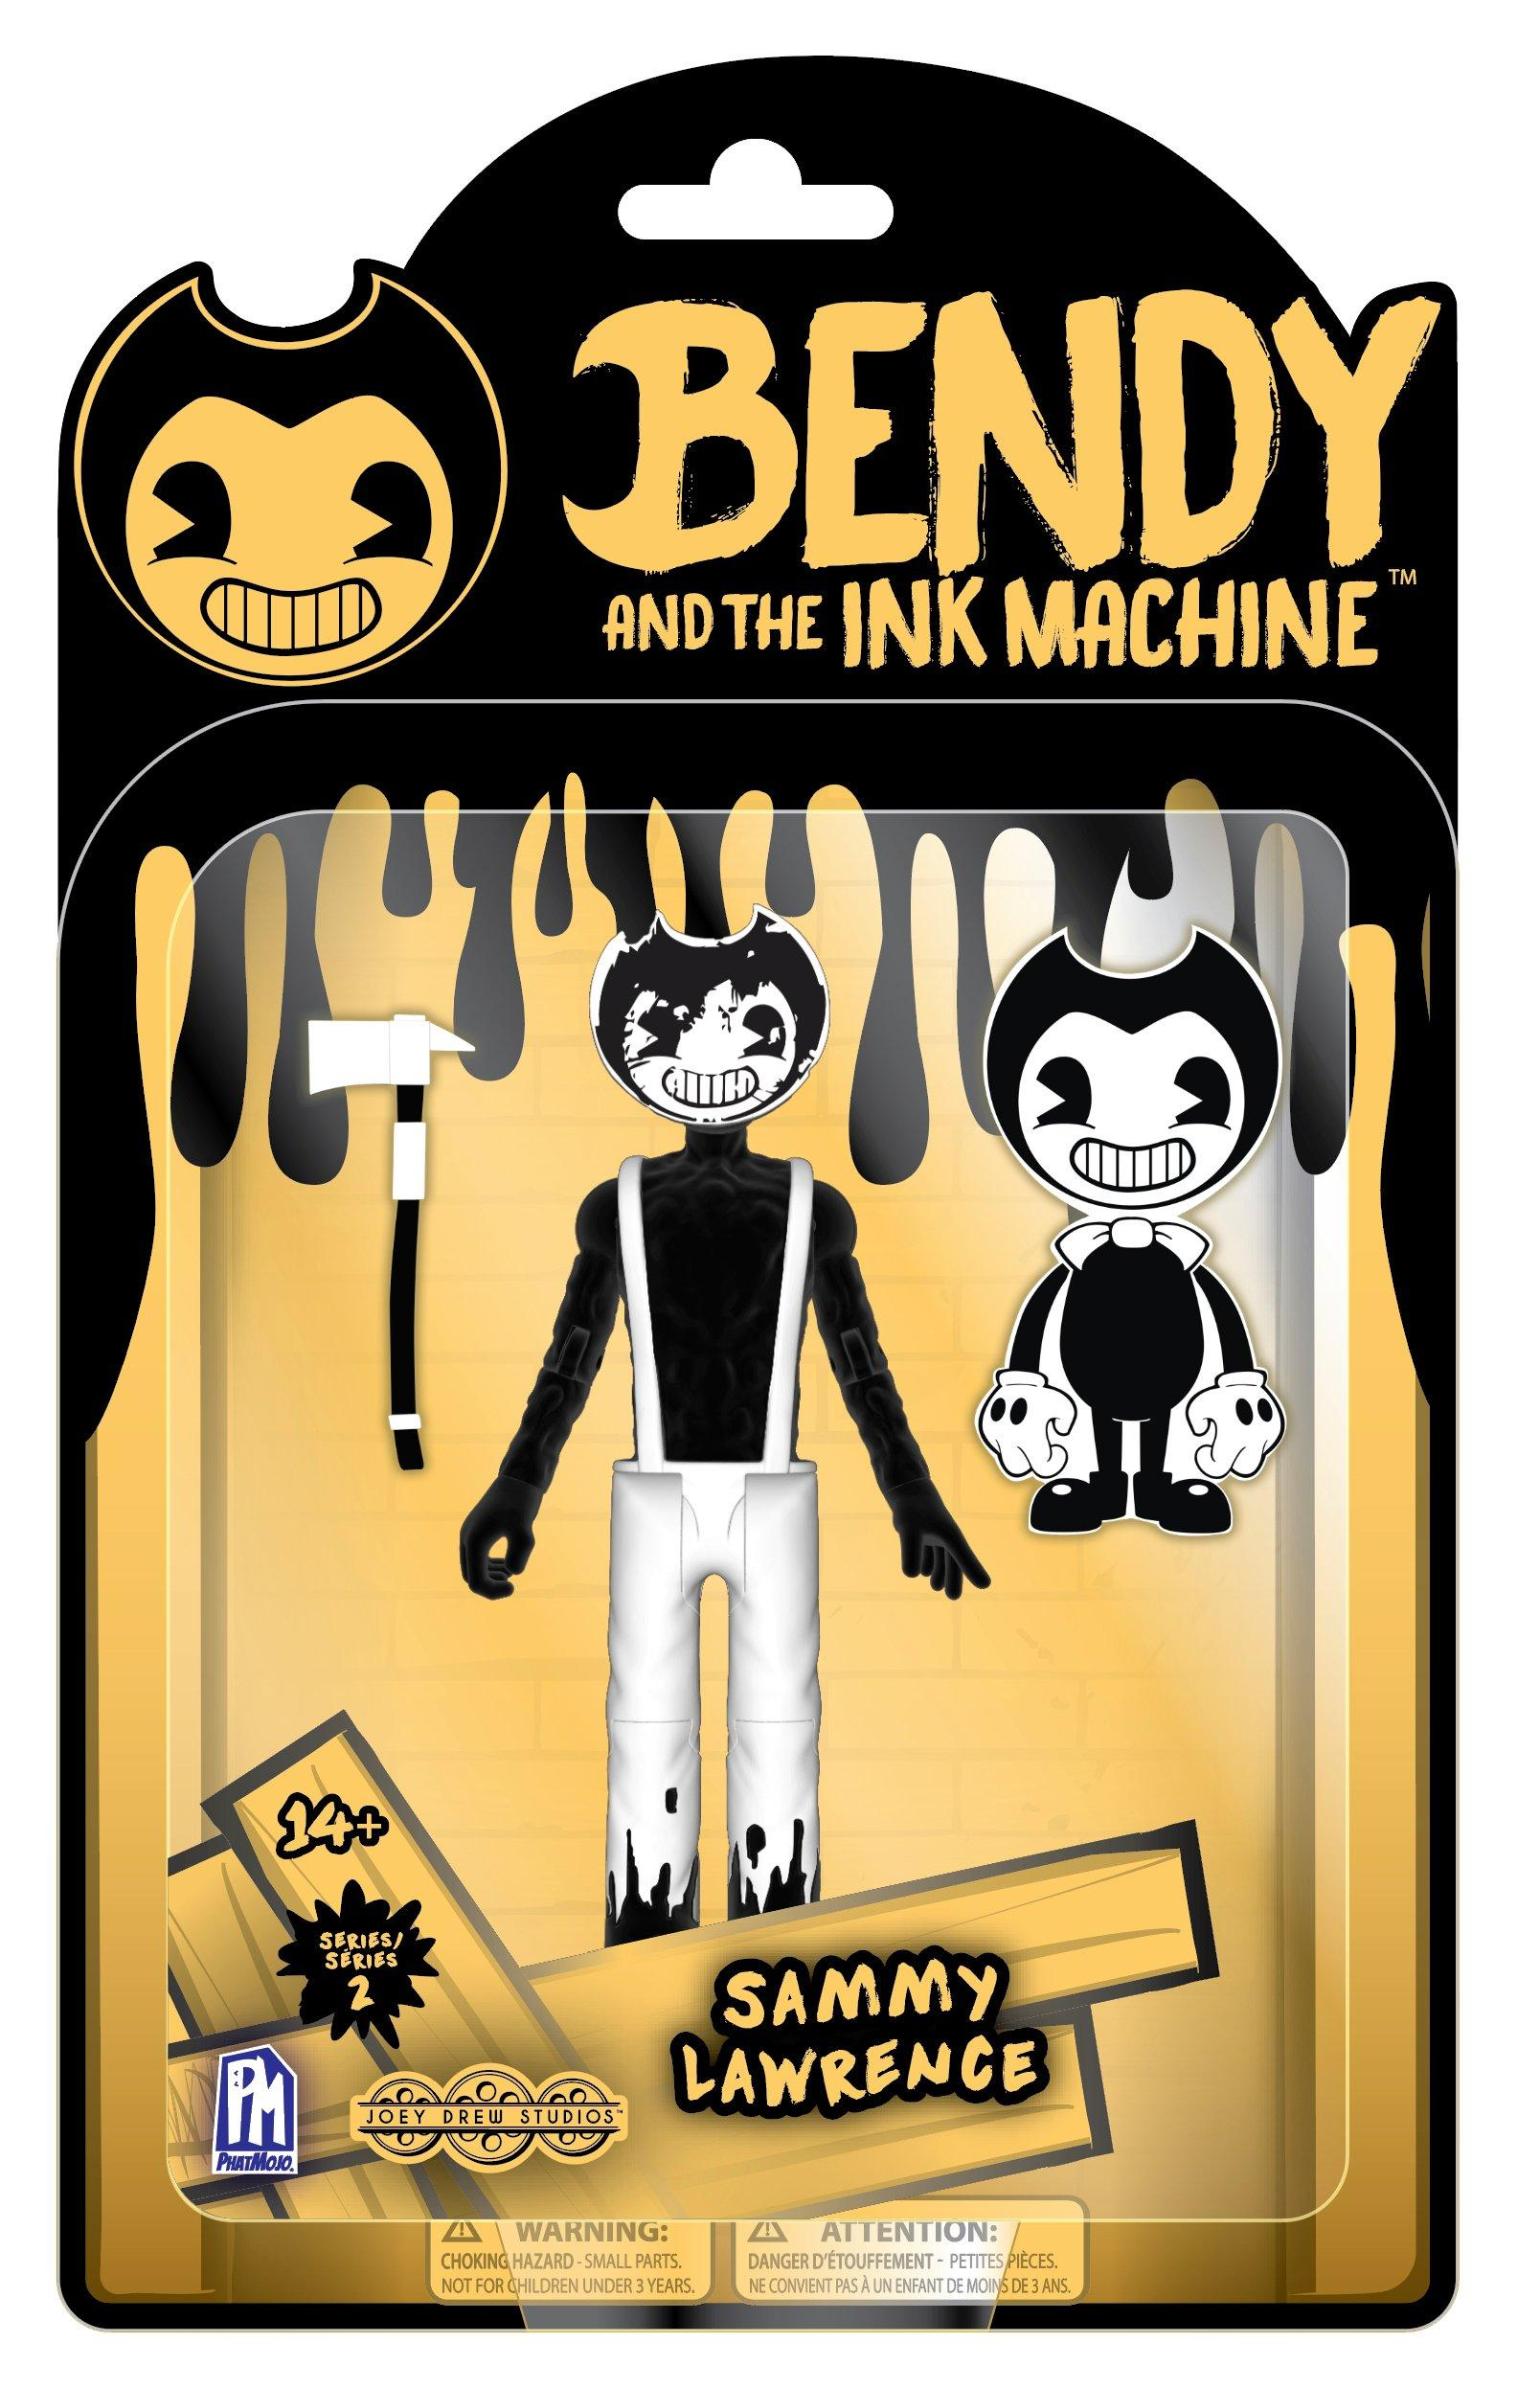 Bendy And The Ink Machine Sammy Lawrence Action Figure Gamestop Zerochan has 14 sammy lawrence (bendy and the ink machine) anime images, fanart, and many more in its gallery. bendy and the ink machine sammy lawrence action figure gamestop